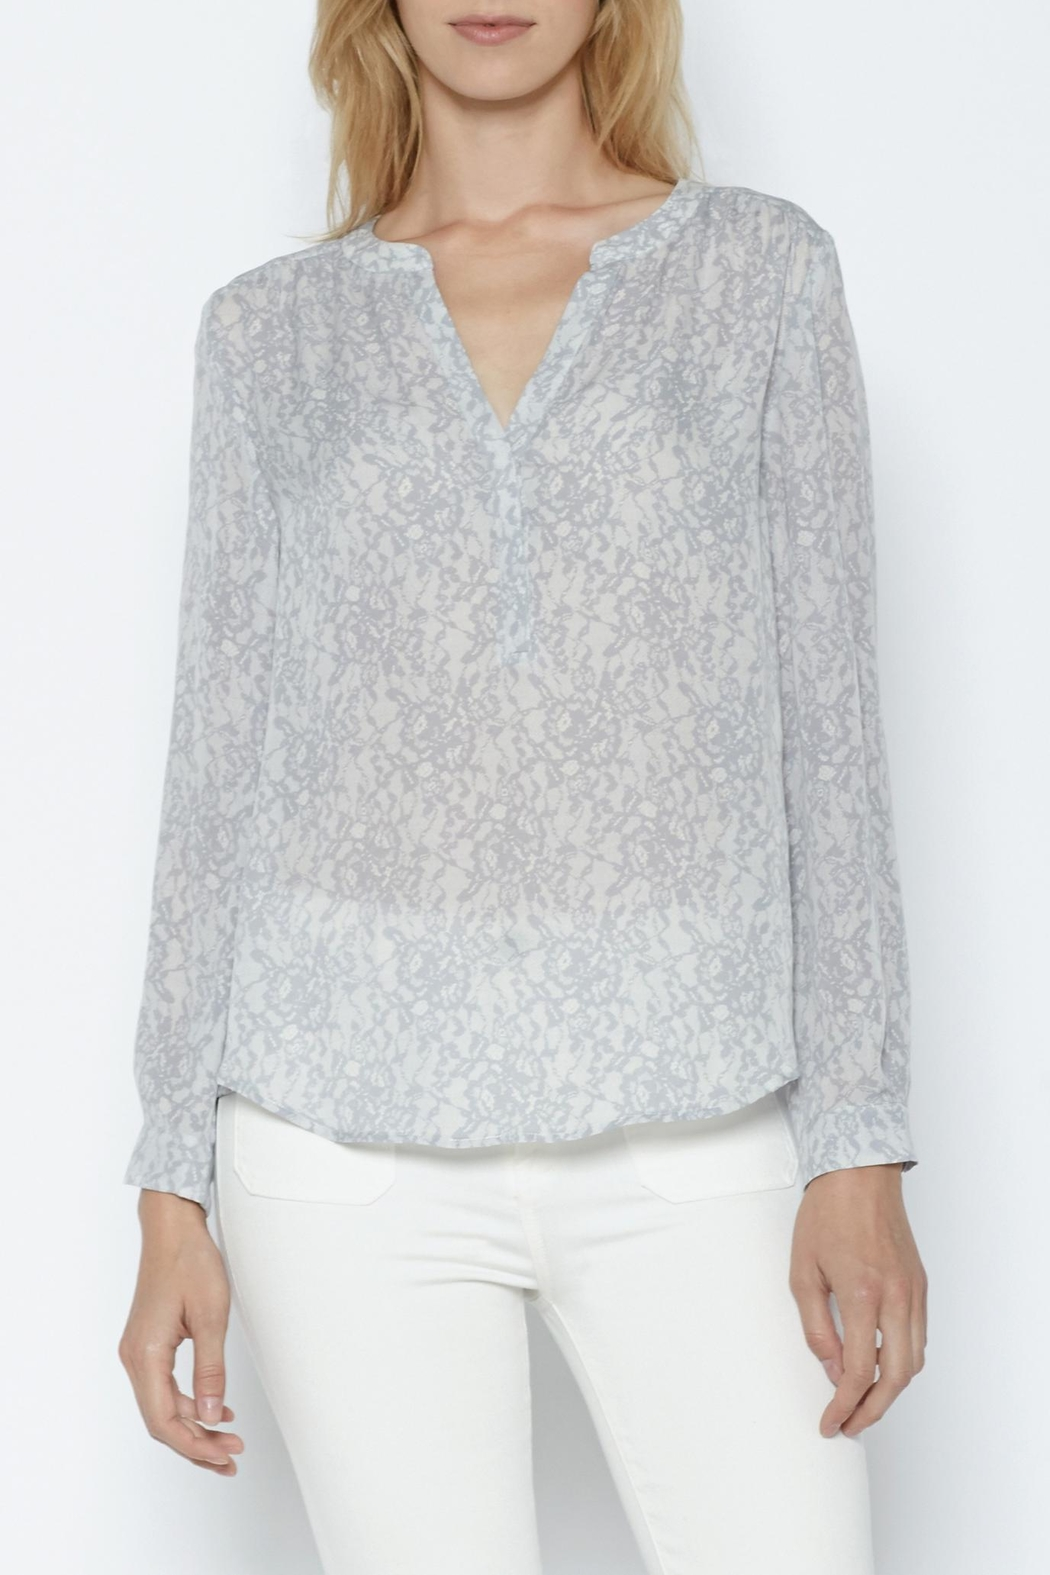 Joie Carita Blouse - Side Cropped Image